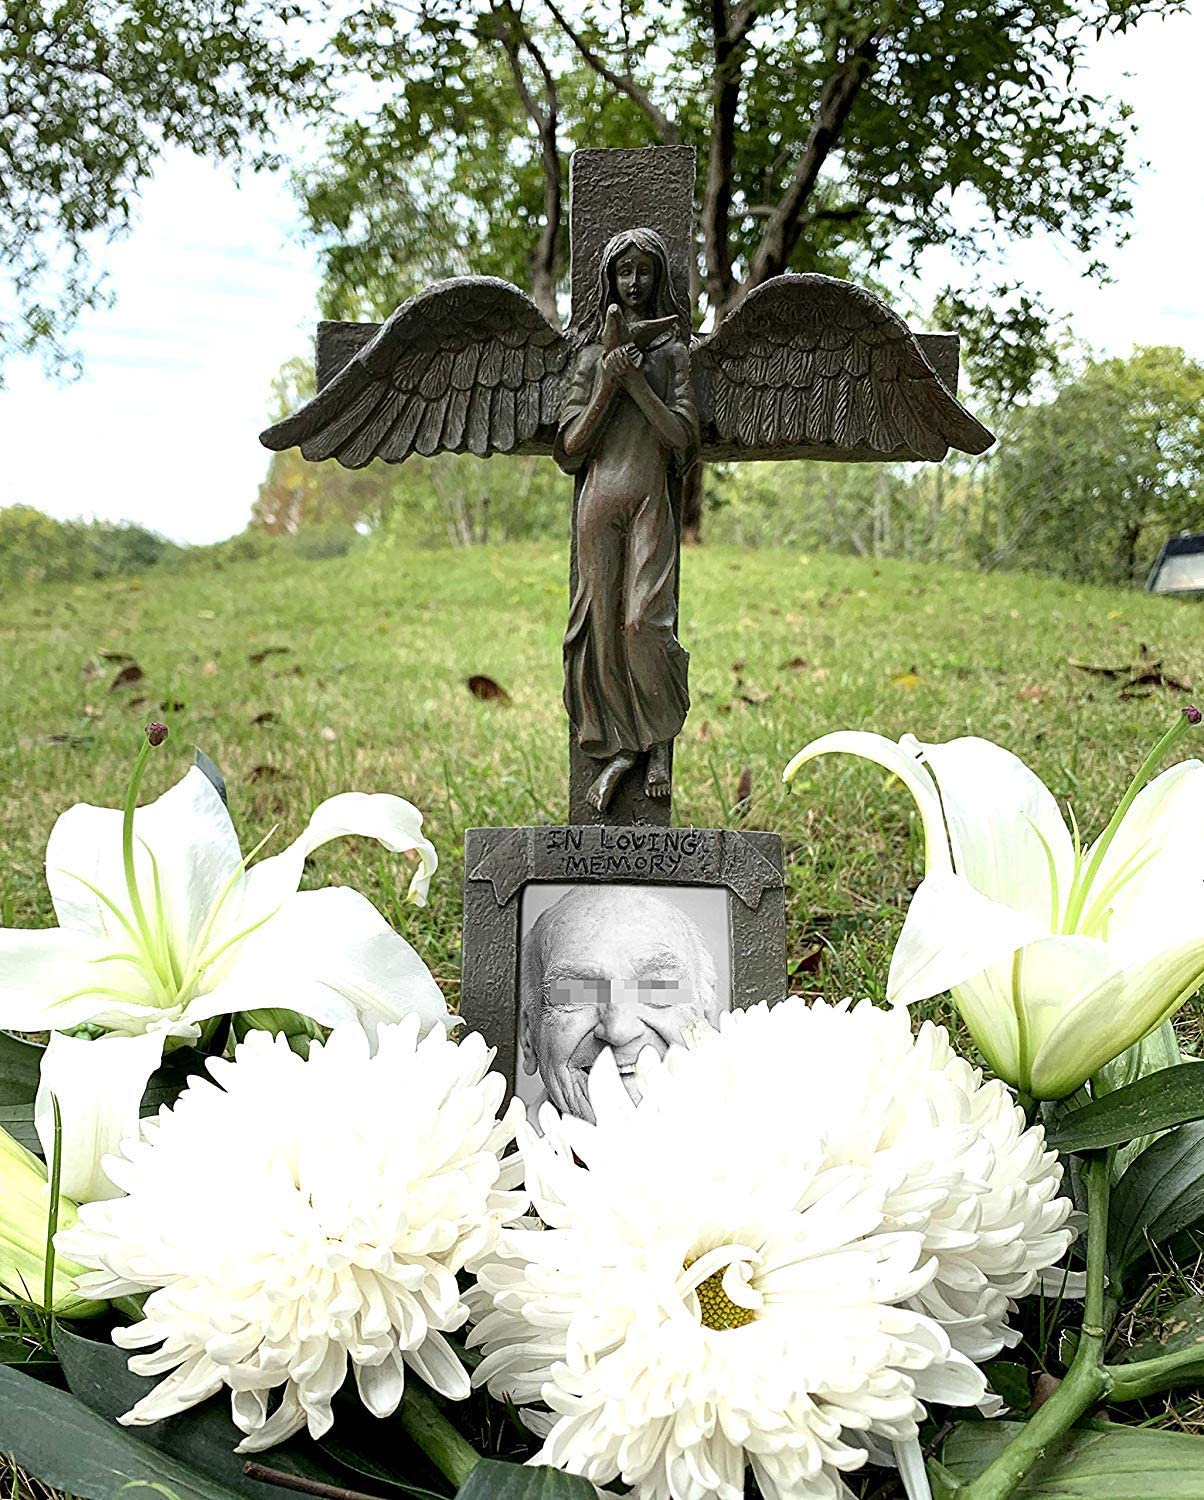 Automatically Lights Up at Night Angel Cemetery Decoration Grave Headstone Memorial BC INTER Solar Lighted Cross